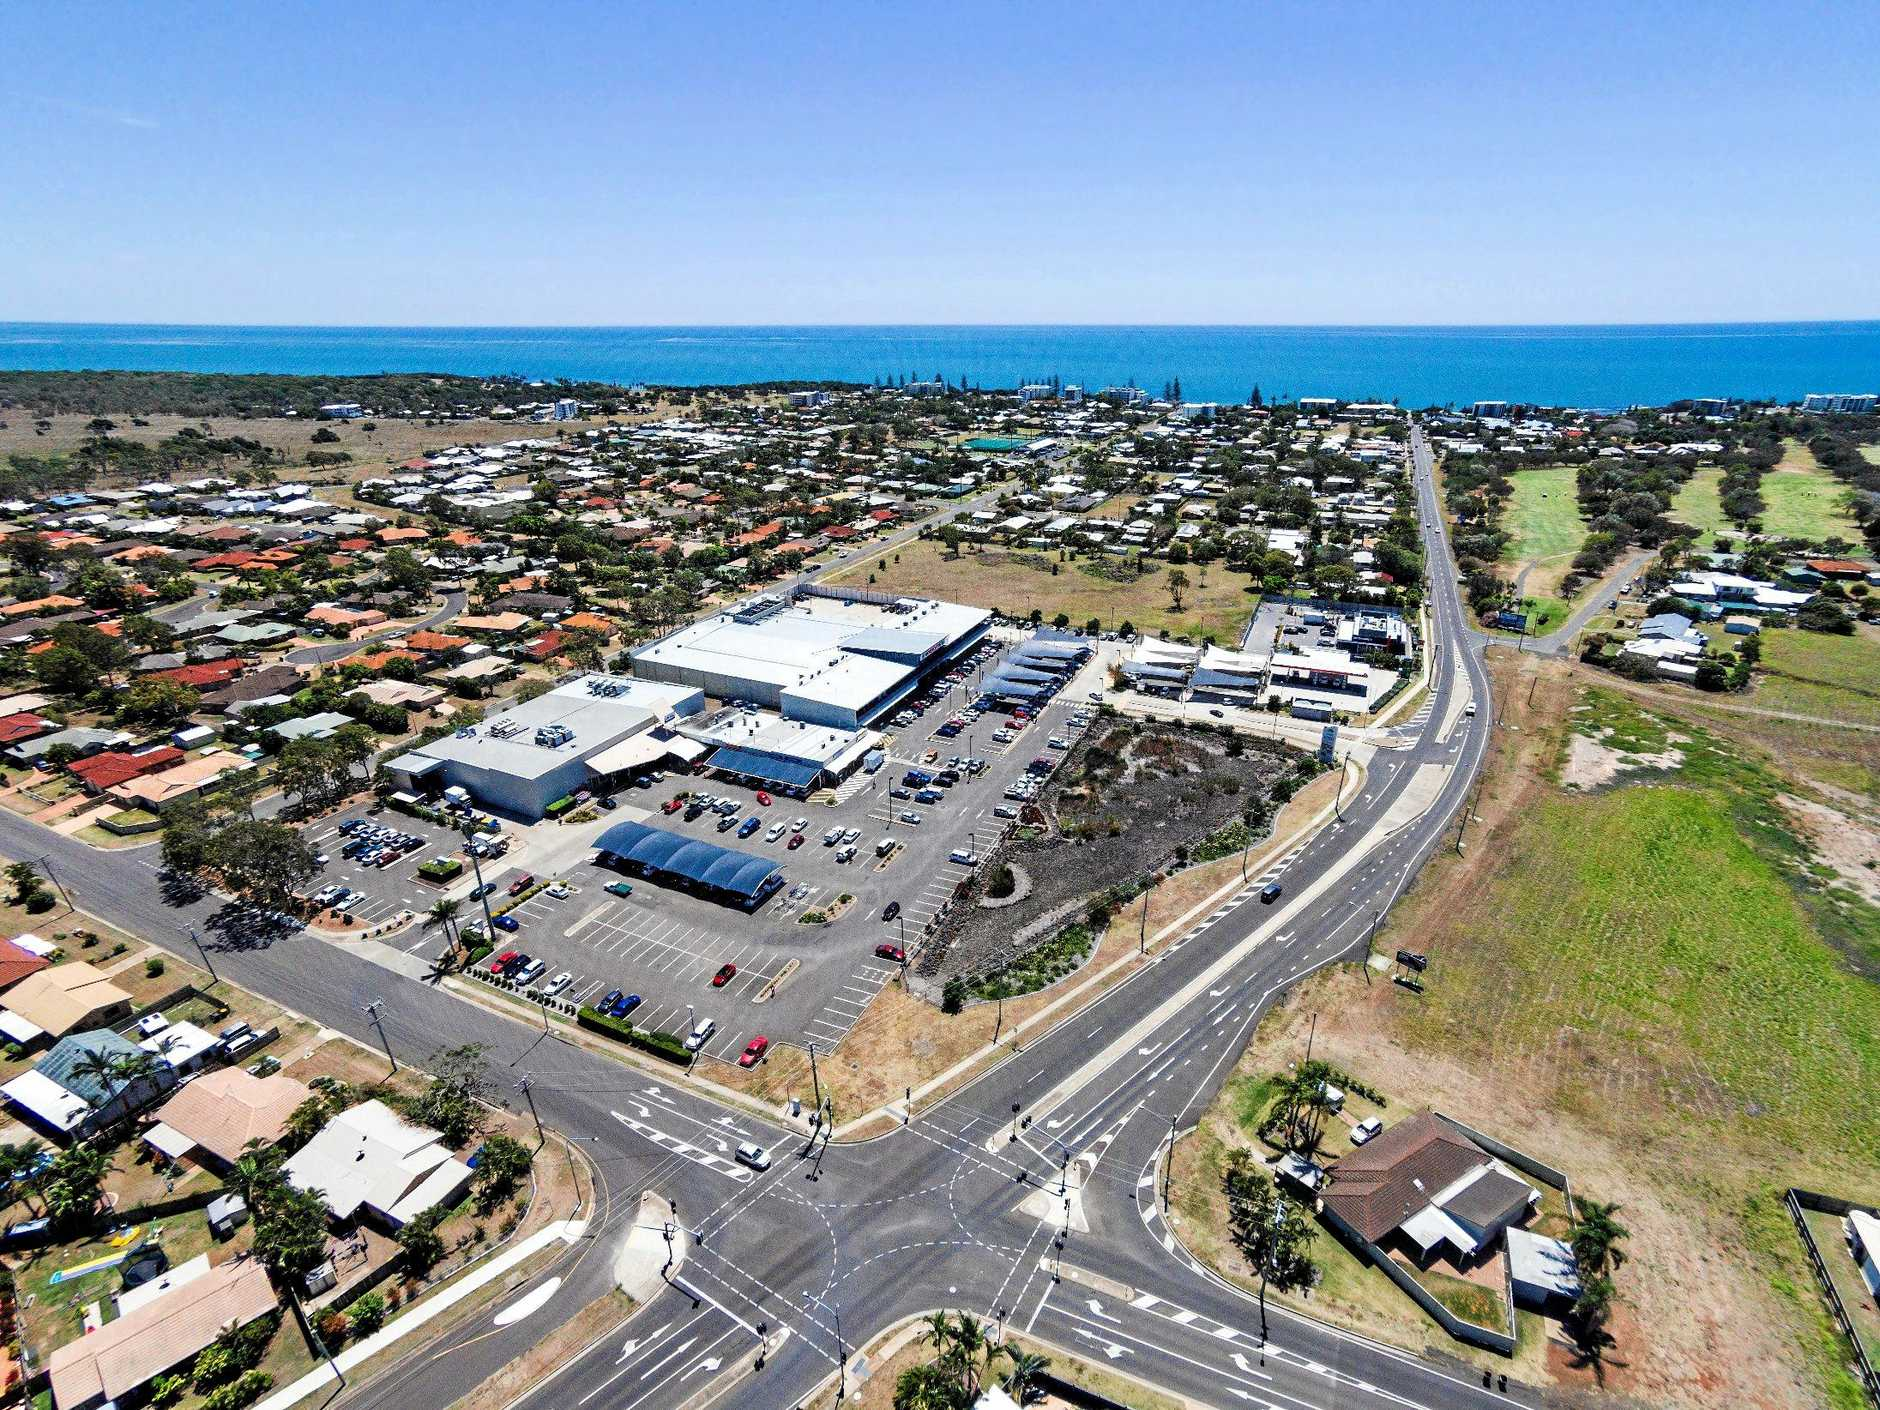 SHOPPING HEAVEN: A bird's-eye view of Bargara Central. Photo Contributed